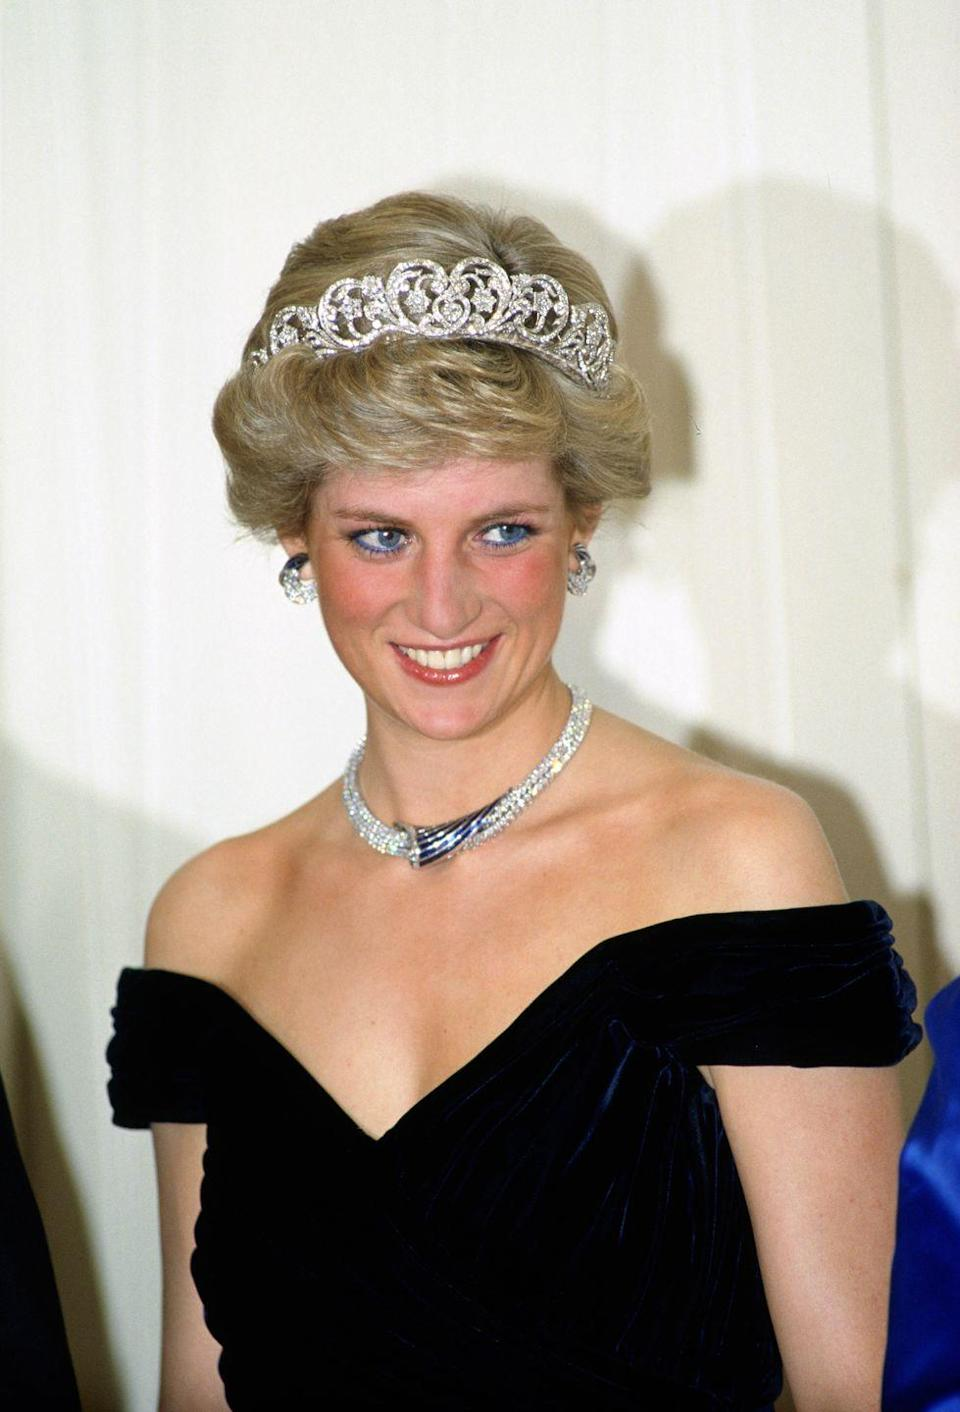 <p>At a banquet in Bonn, Germany, Princess Diana chose a black off-the-shoulder gown designed by Victor Edelstein. The princess added color with her sapphire and diamond necklace, a gift from the Sultan of Oman. She topped off the look with the Spencer tiara. </p>